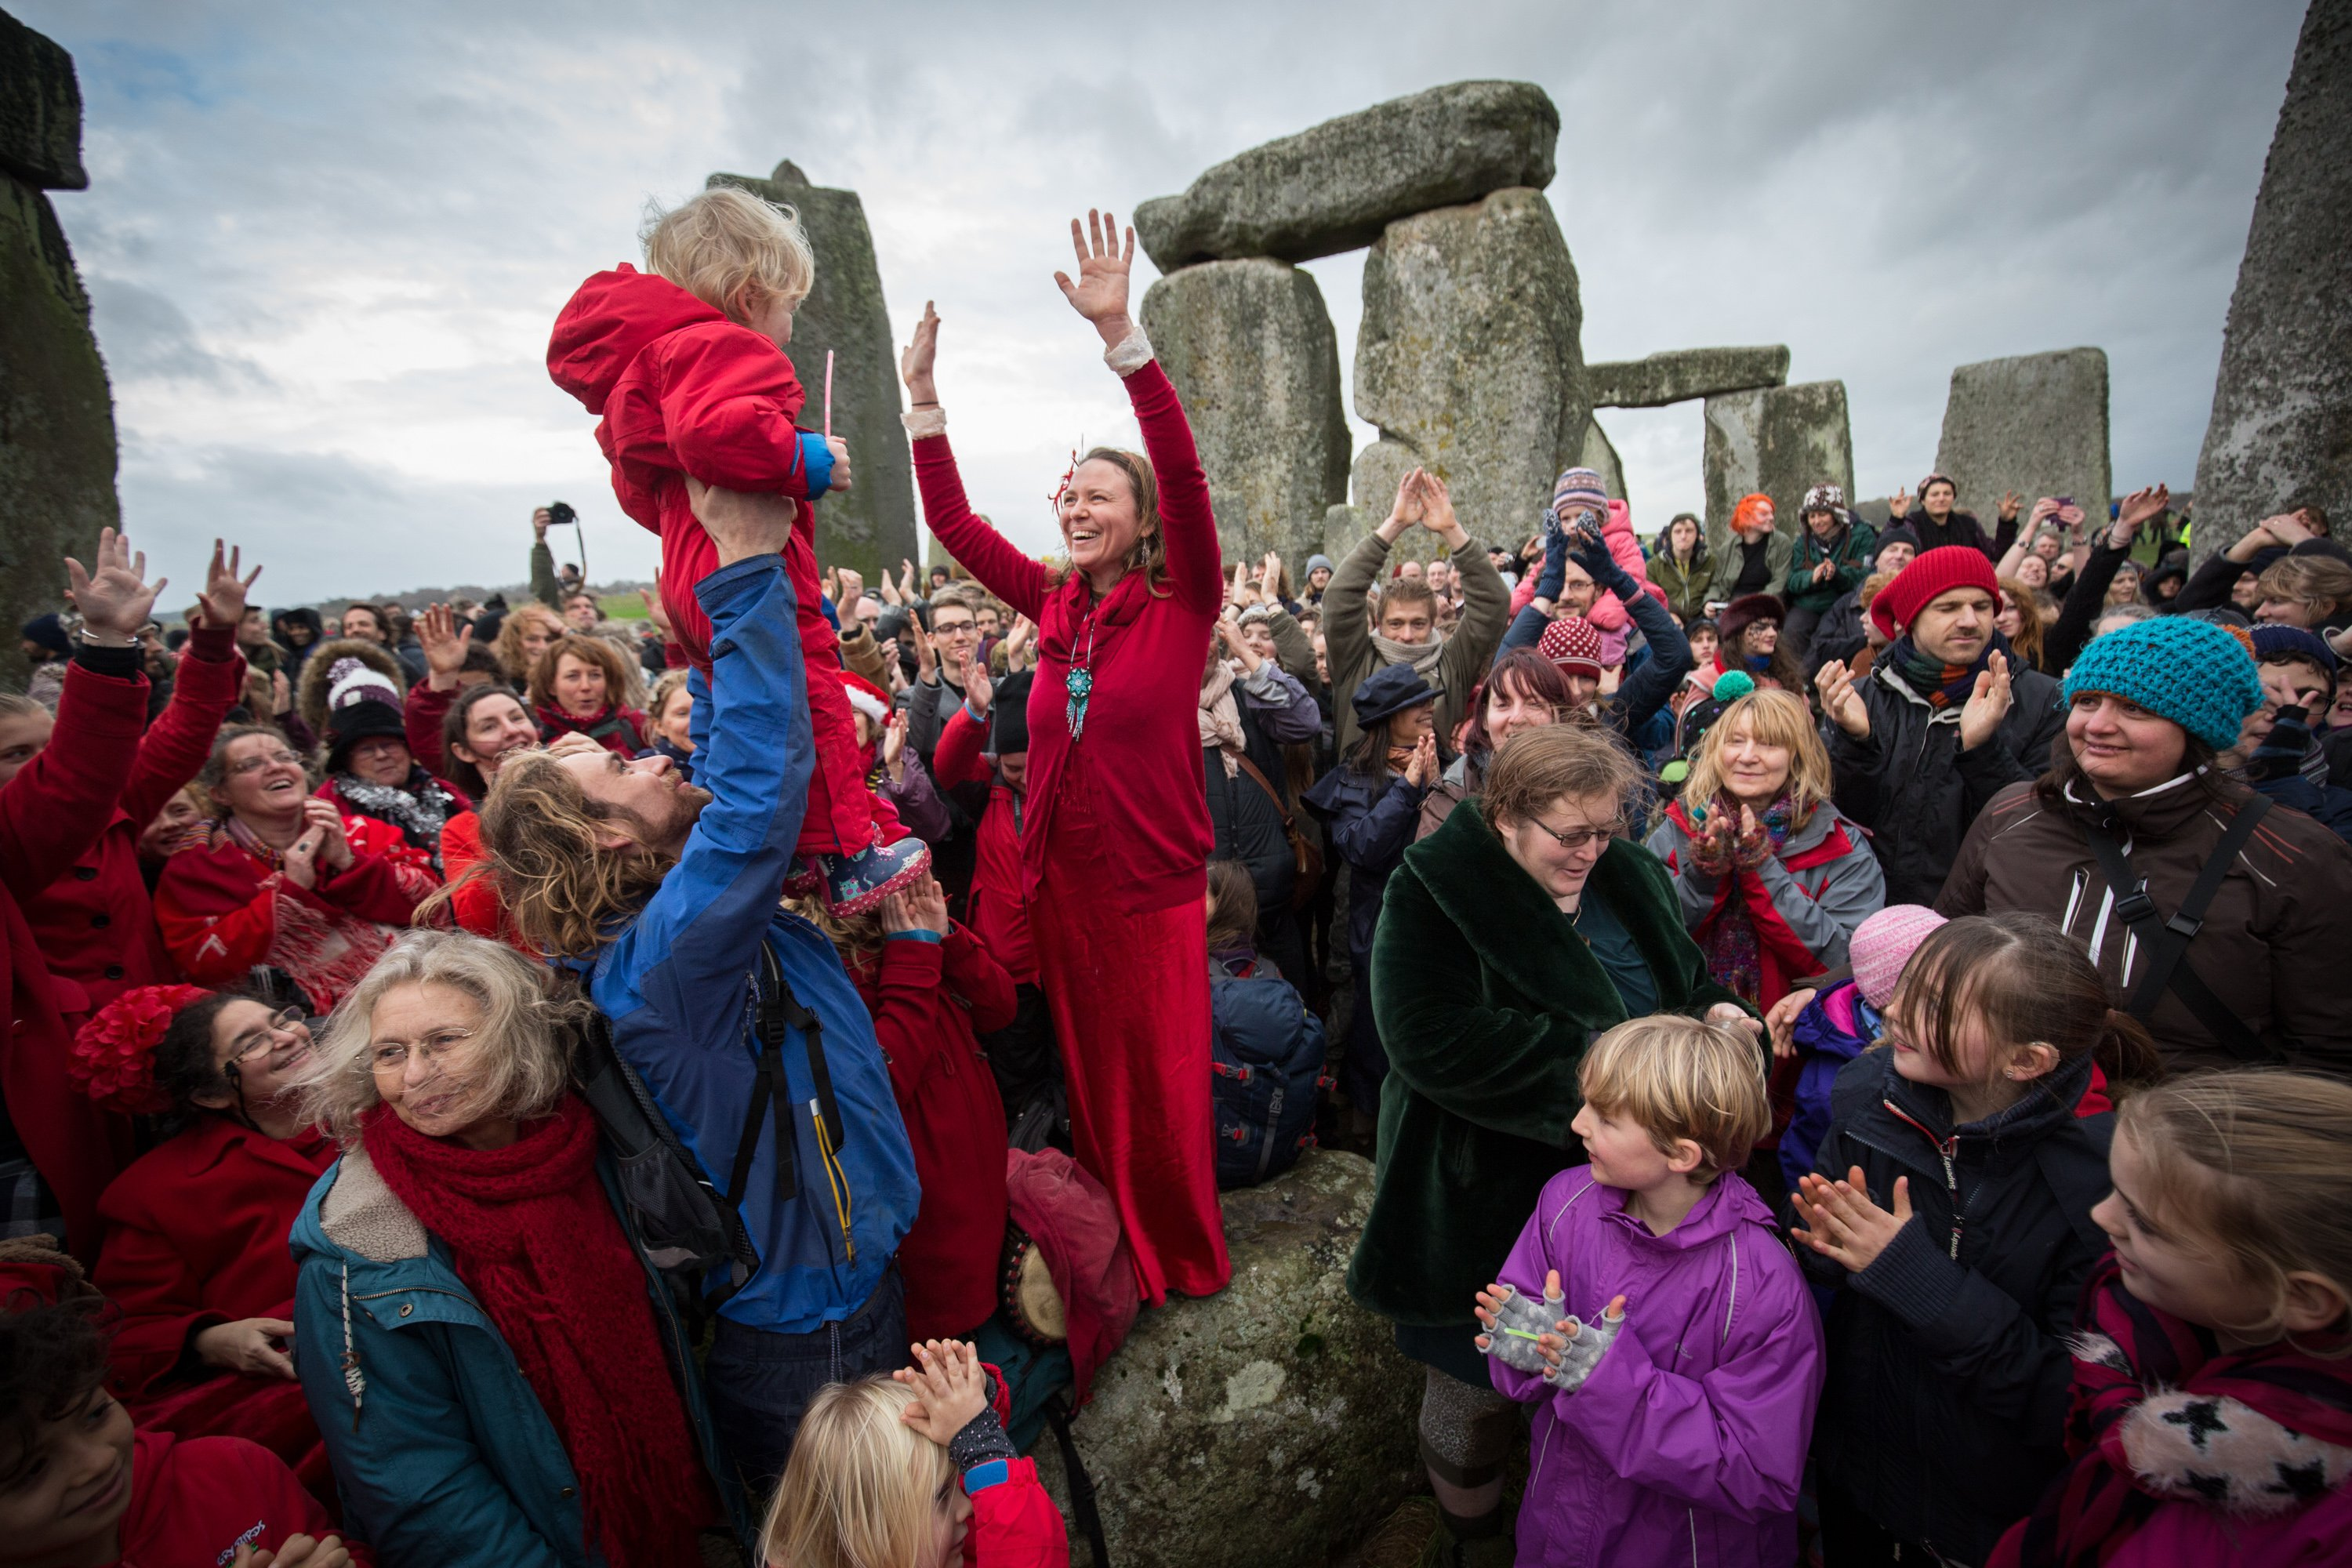 Susie Ro Prater leads the Shakti Sings choir as druids, pagans and revelers gather in the centre of Stonehenge on Dec. 22, 2015 in Wiltshire, England.